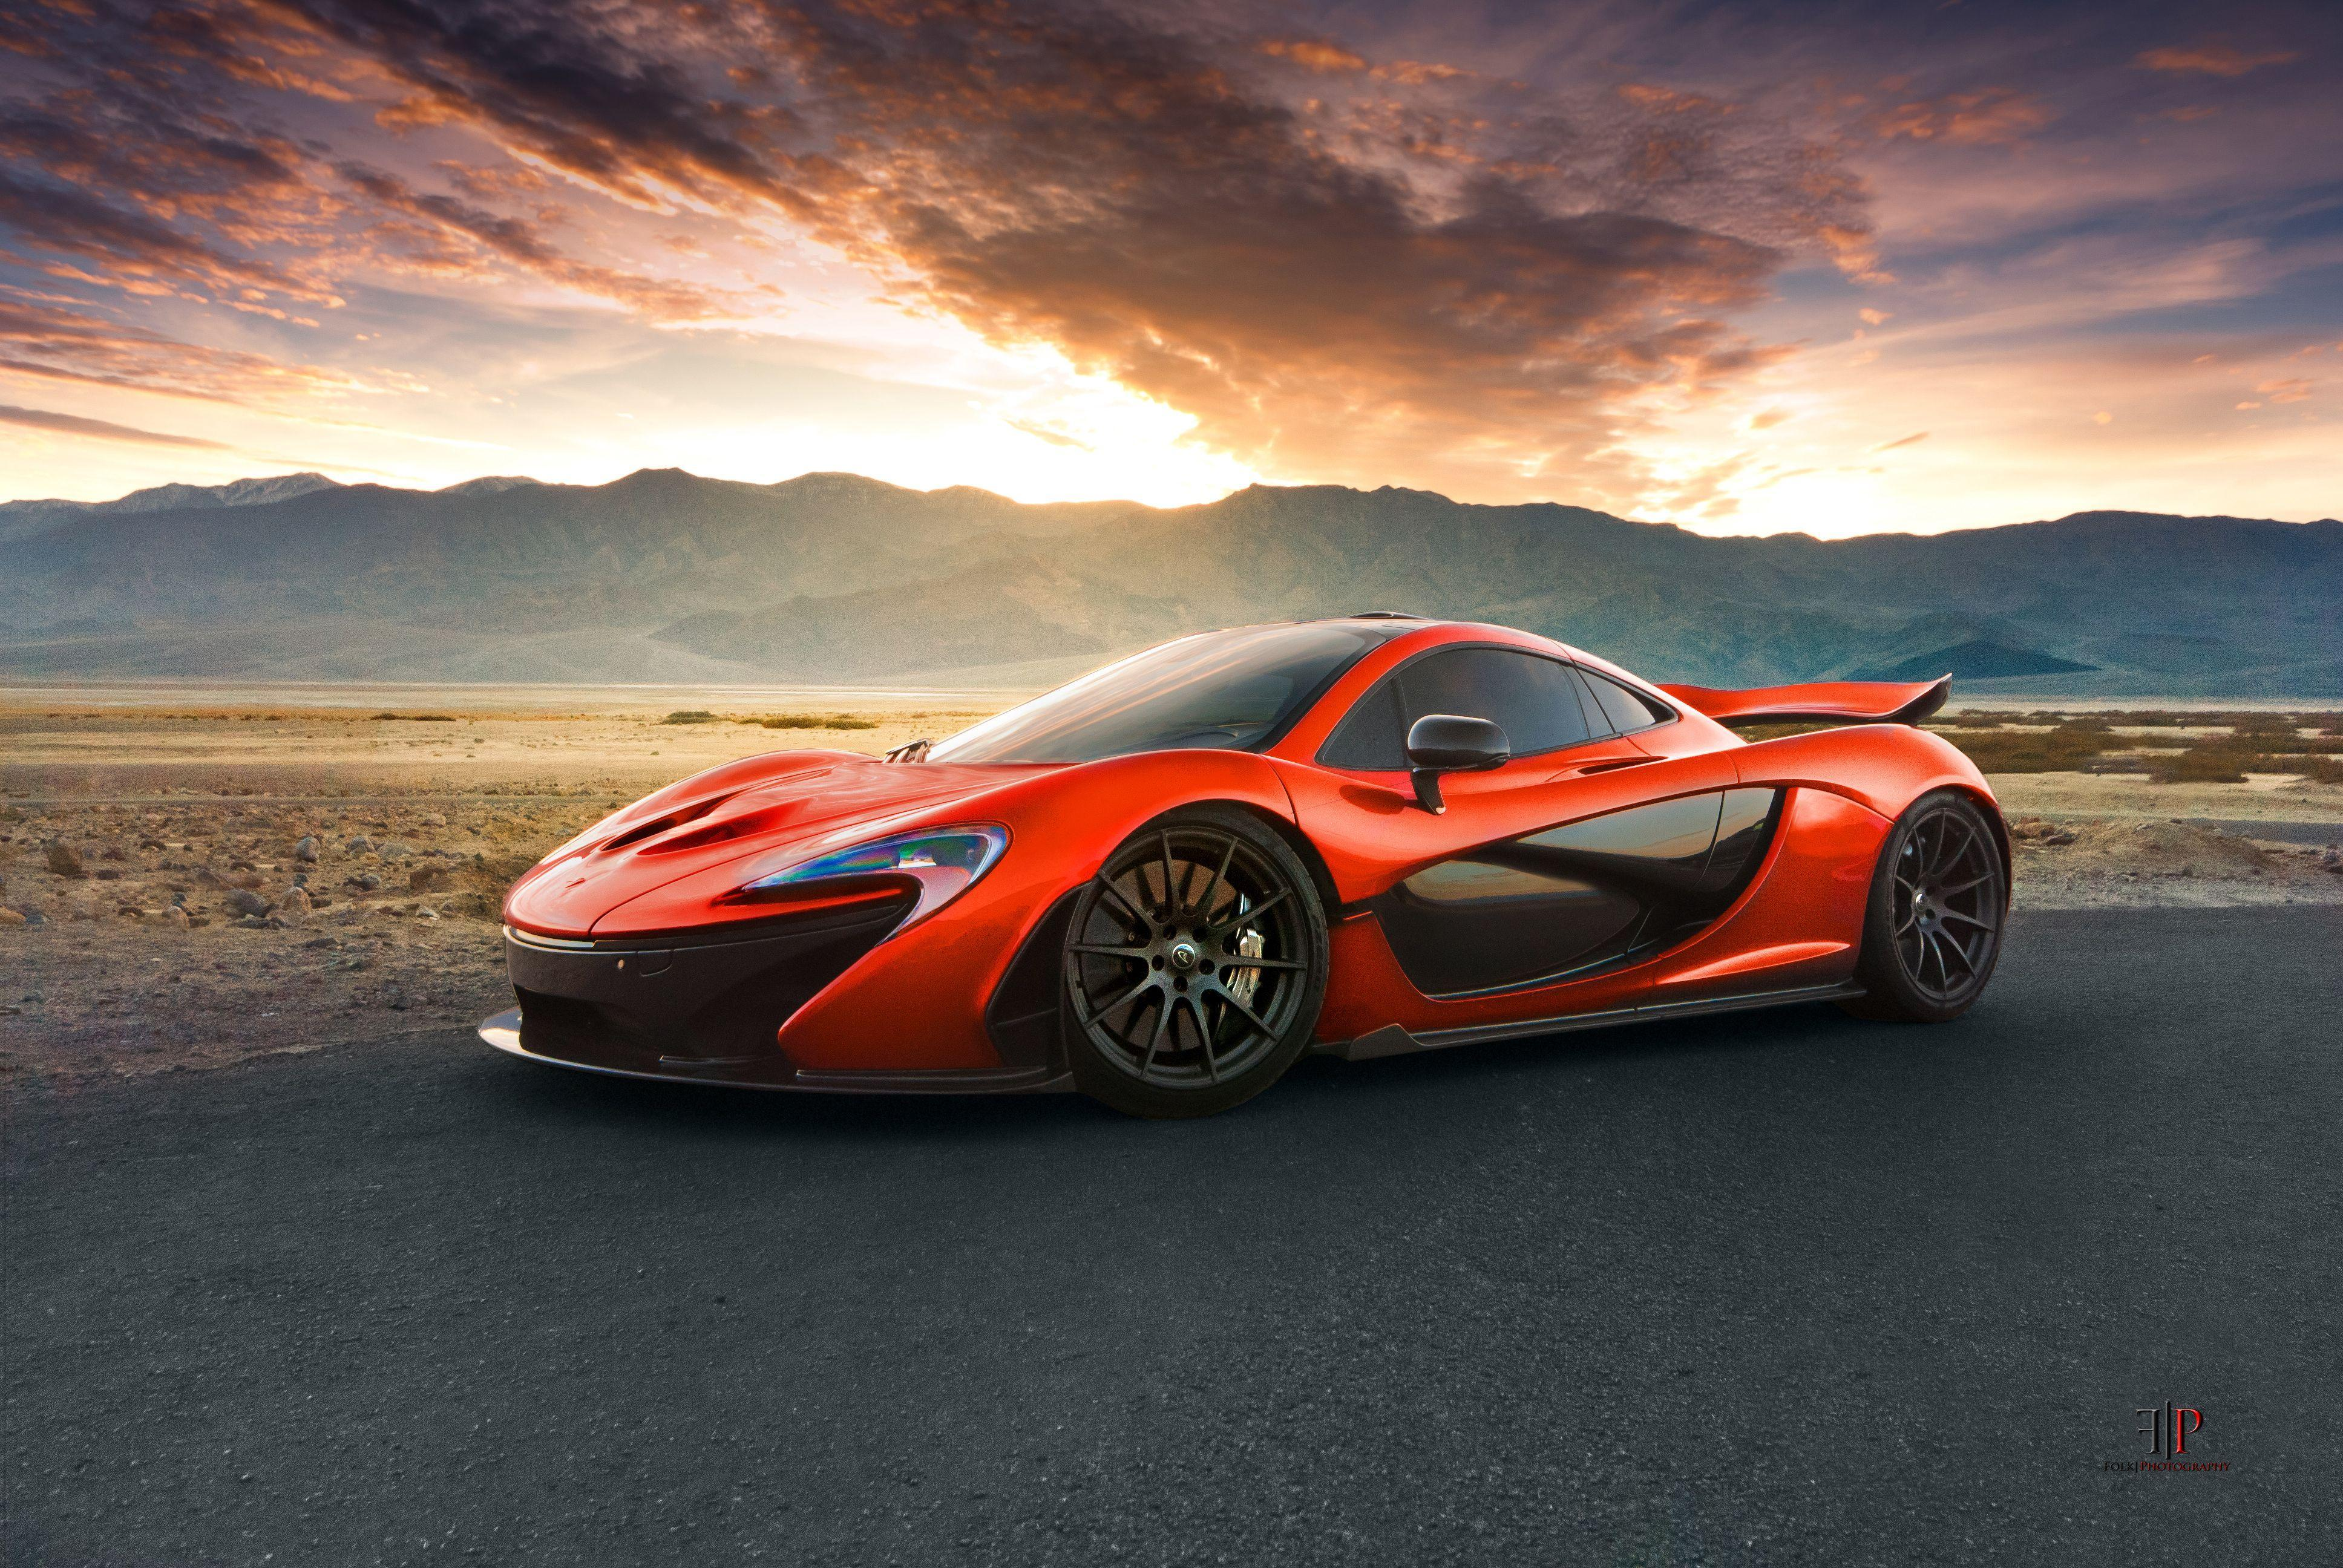 Mclaren P1 Wallpaper 1920x1080 Mclaren P1 Wallpapers Wallpaper Cave